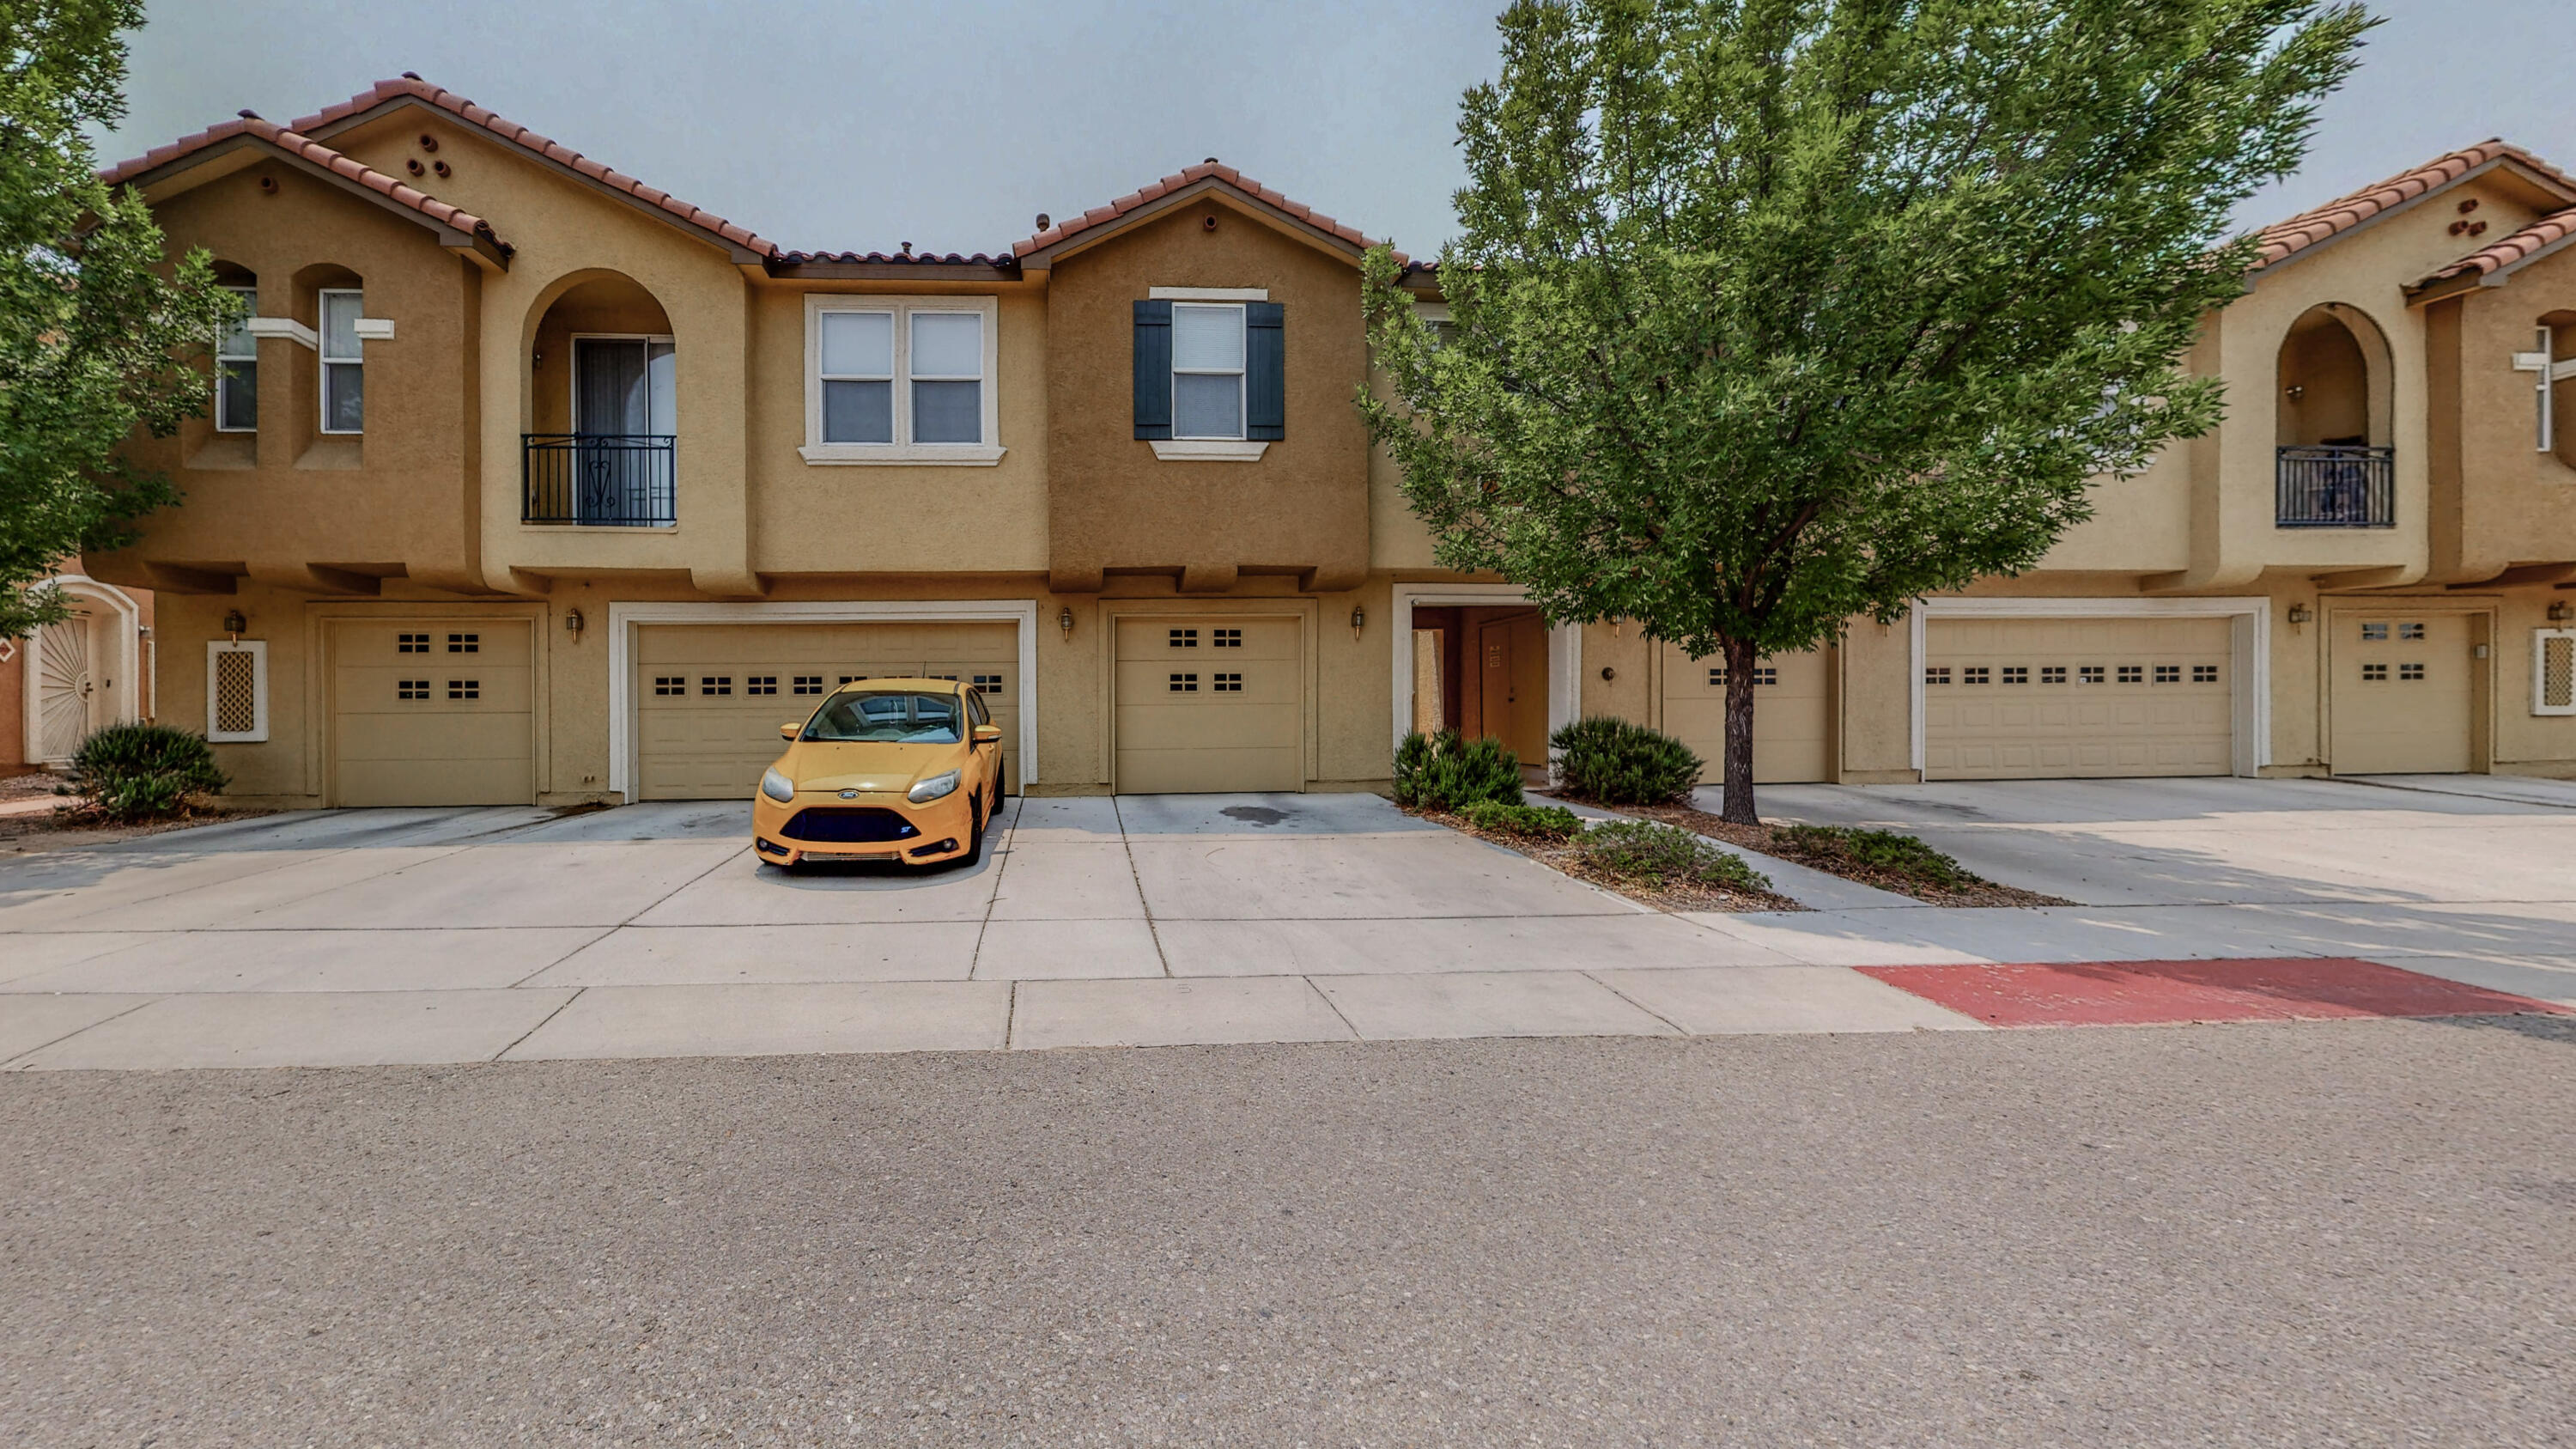 Welcome Home!  Highly sought after condo complex, The Villas, conveniently located very close proximity to I-25, UNM, CNM and much more!  Home features updated vinyl plank flooring, granite counters in kitchen, 1 car garage, and good sized private backyard!  HOA includes front gate, exterior of residence, pool, and water!  Come see today!